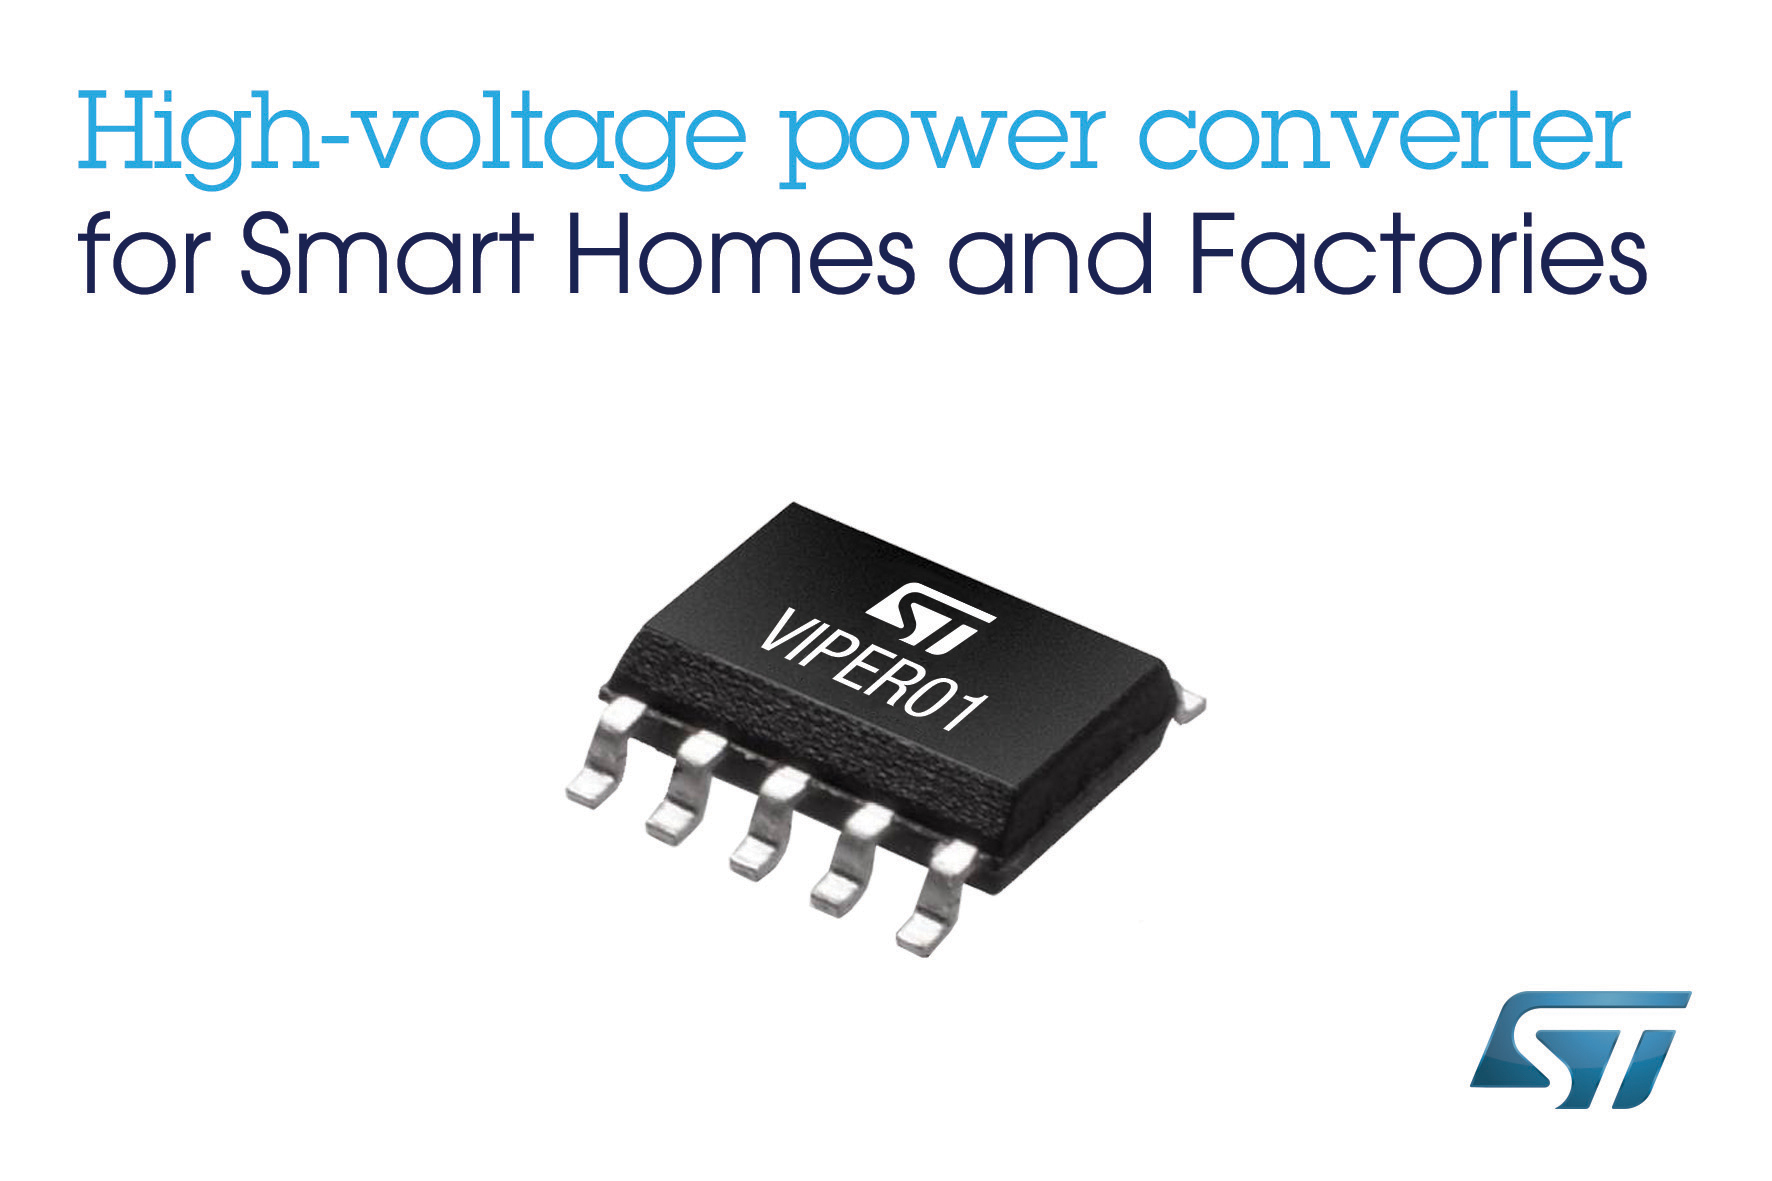 STMicroelectronics unveils high-voltage power converter for ultra-low-consumption, simple, and cost-effective SMPS (Switched-Mode Power Supply) with 5V output voltage